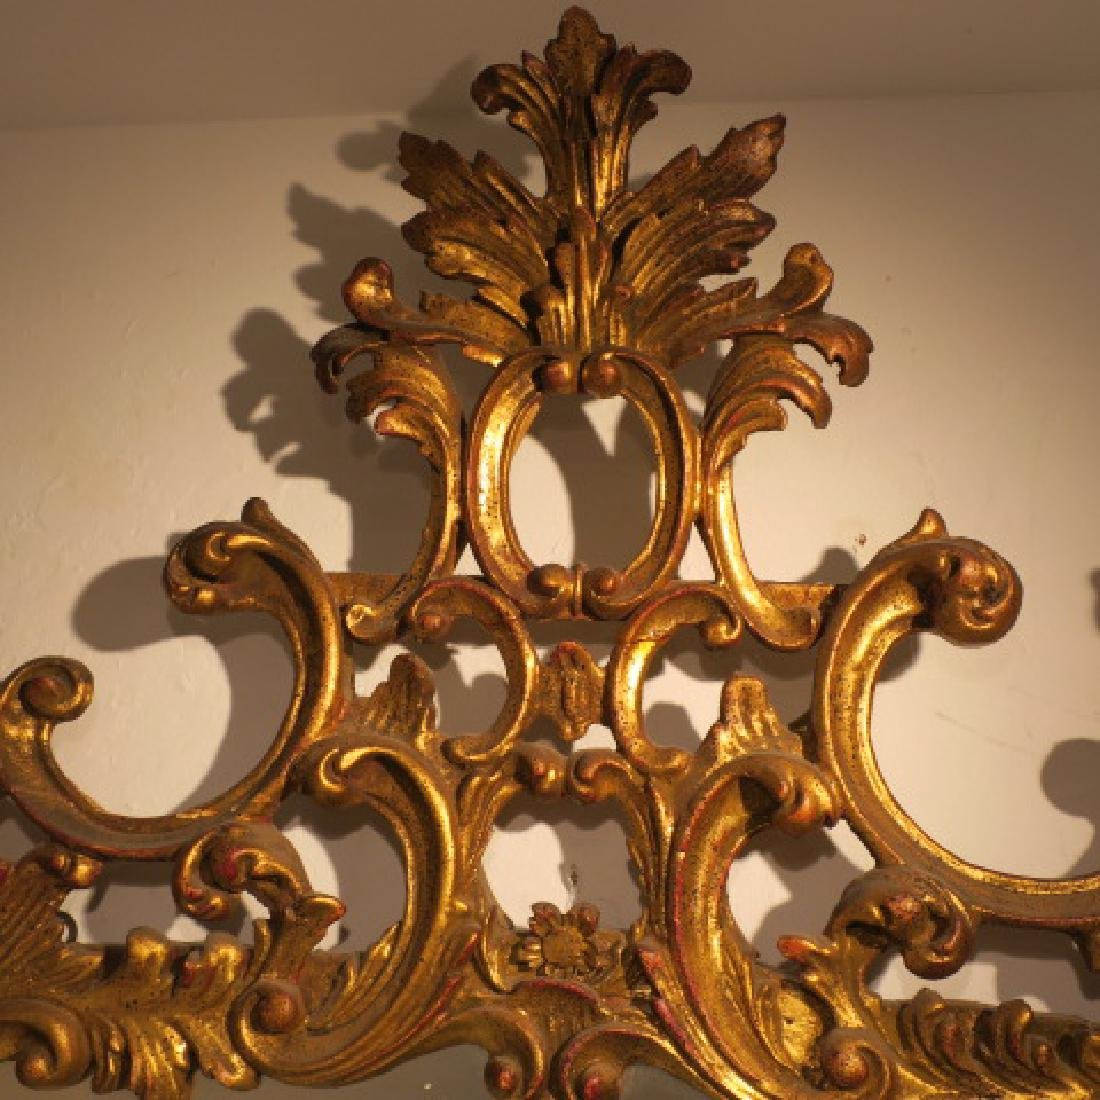 Large Gold Acanthus Leaf Rococo Mirror: - 4